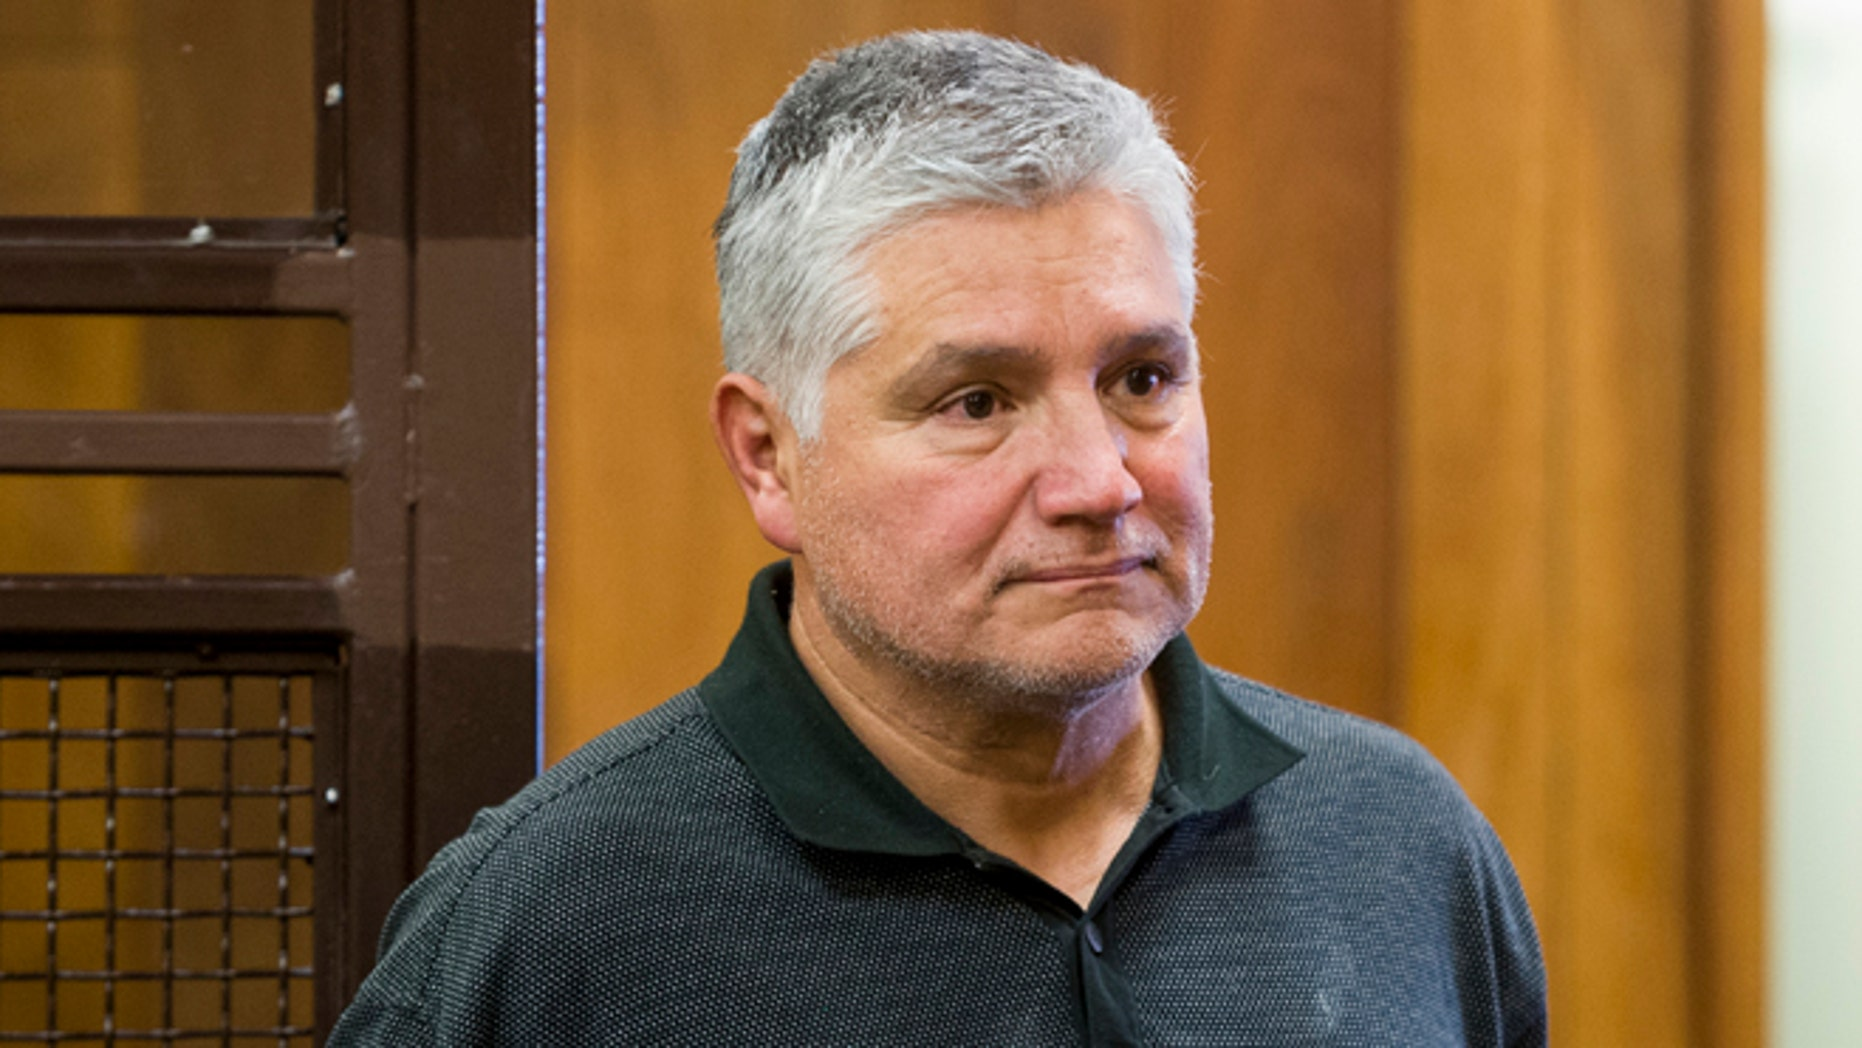 Robert Pimentel at his arraignment on Jan. 24, 2013 at Los Angeles Superior Court in Long Beach, Calif.